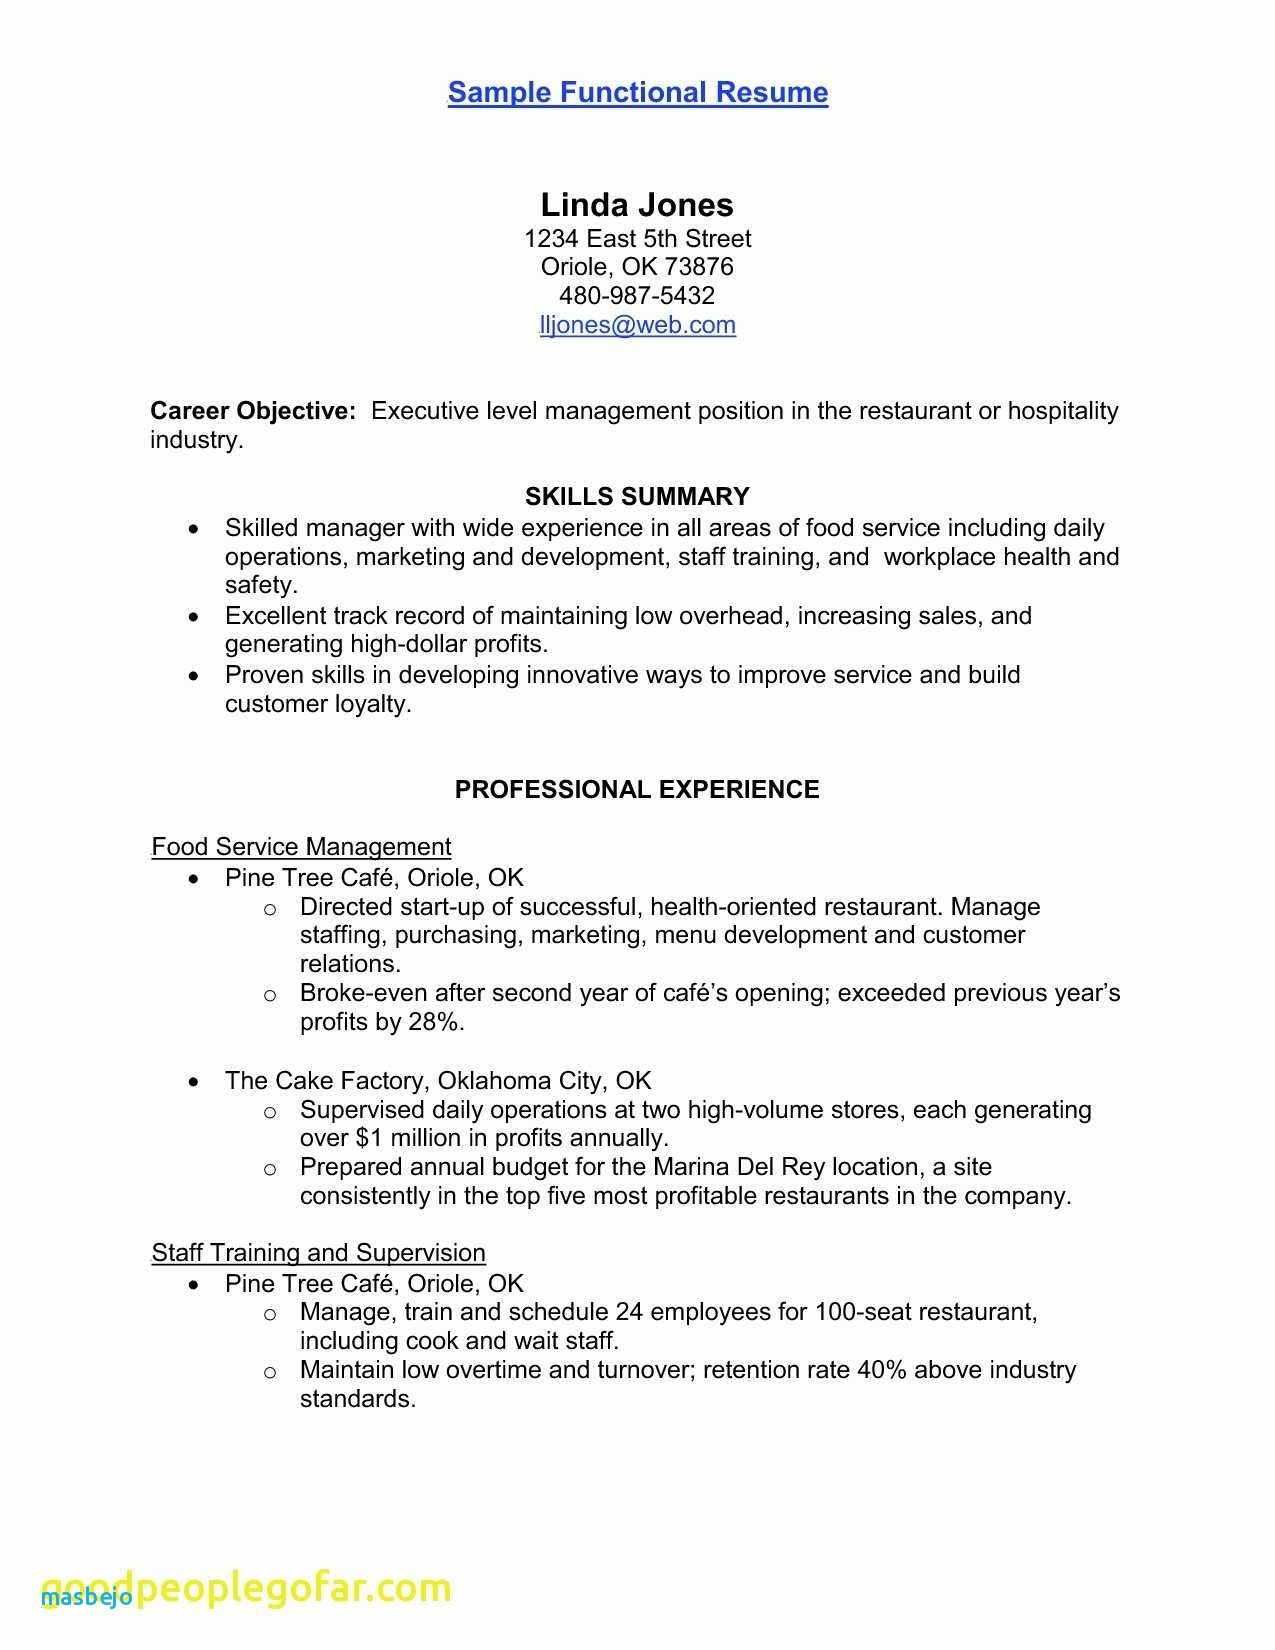 Banking Skills for Resume - Resume for Banking Operations In which Ten is Made Use Resume